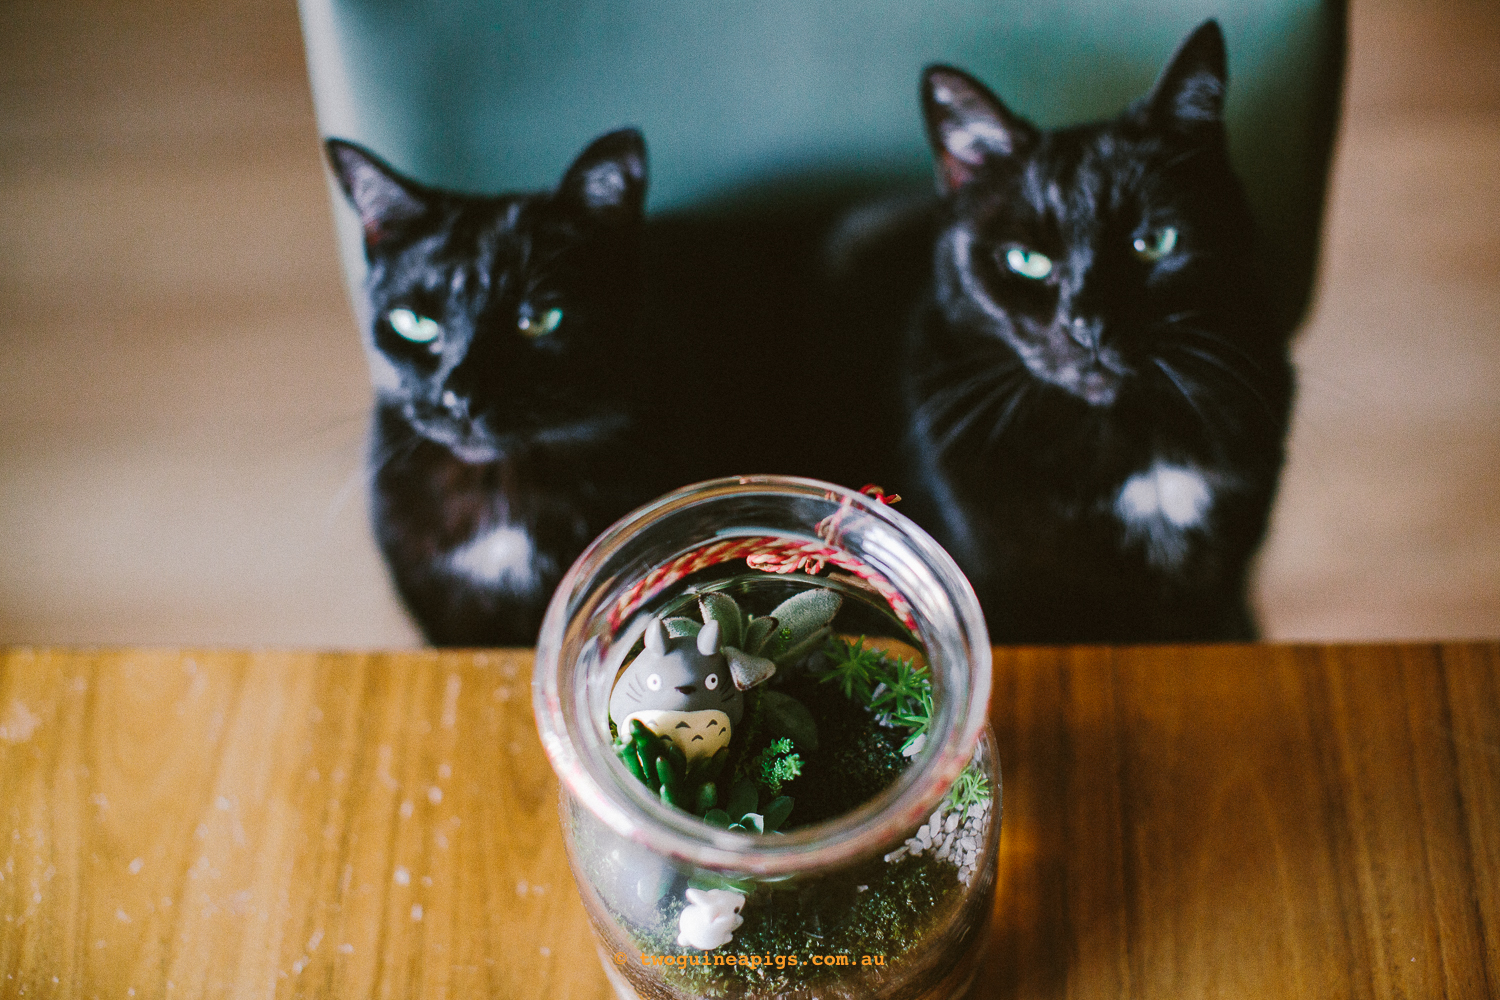 twoguineapigs_pet_photography_blackcts_mrbig_pf_terrarium_totoro